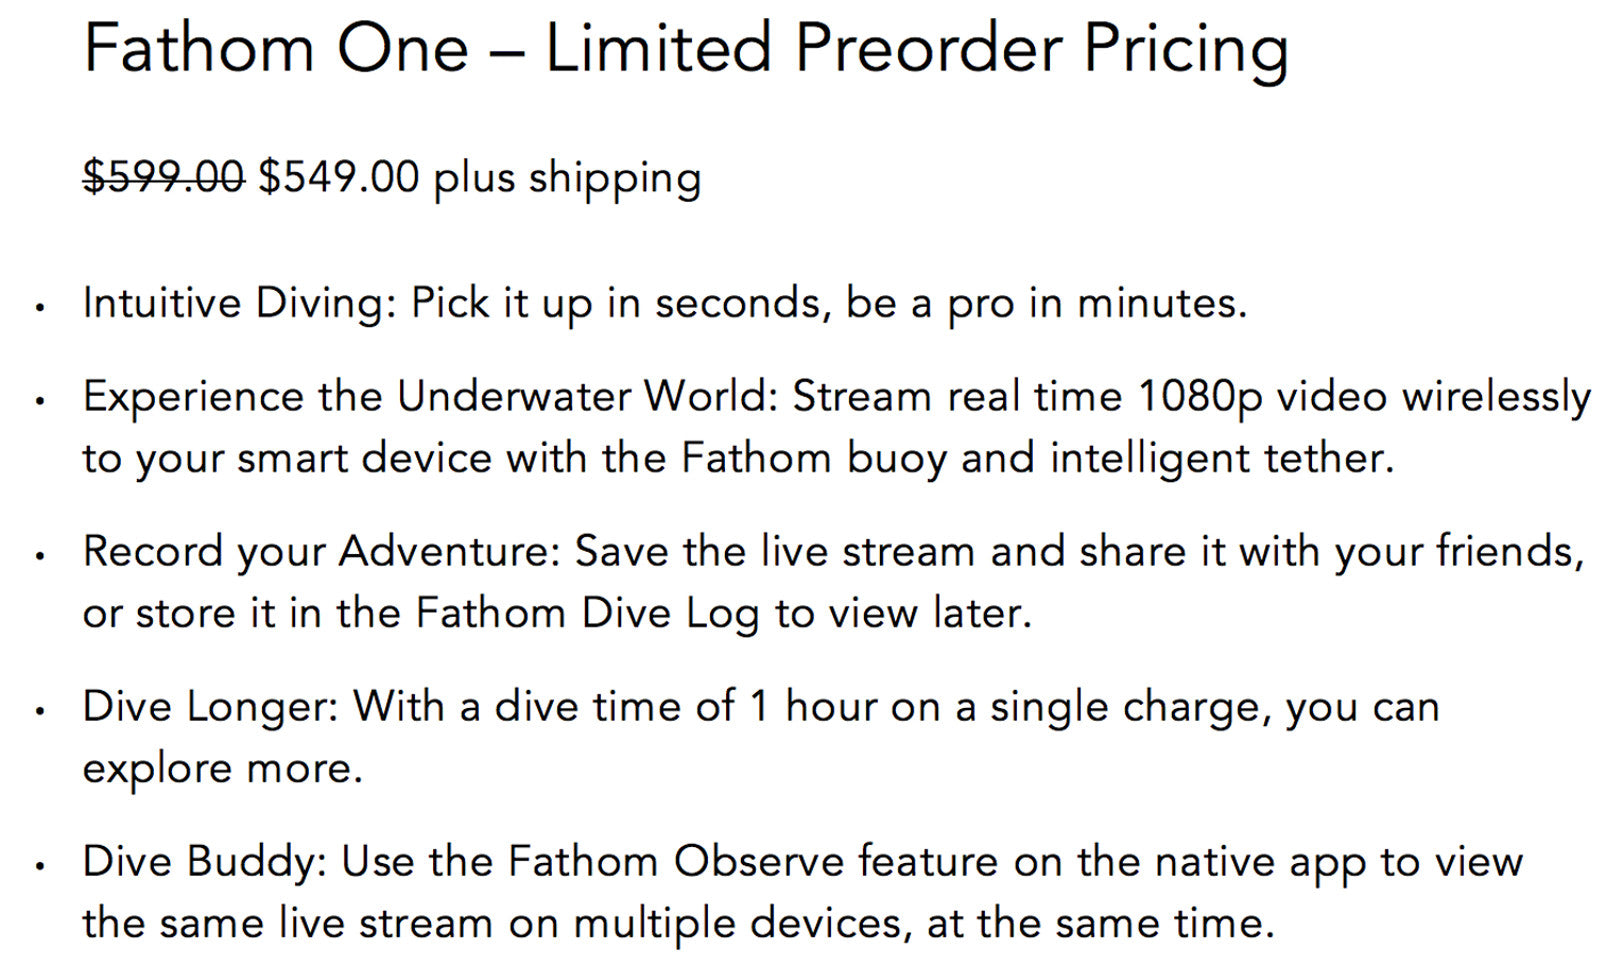 $599 plus shipping. Intuitive Diving: Pick it up in seconds, be a pro in minutes. Experience the Underwater World: Stream real time 1080p video wirelessly to your smart device with the Fathom buoy and intelligent tether. Record your Adventure: Save the live stream and share it with your friends, or store it in the Fathom Dive Log to view later. Dive Longer: With a dive time of 1 hour on a single charge, you can explore more. Dive Buddy: Use the Fathom Observe feature on the native app to view the same live stream on multiple devices, at the same time.